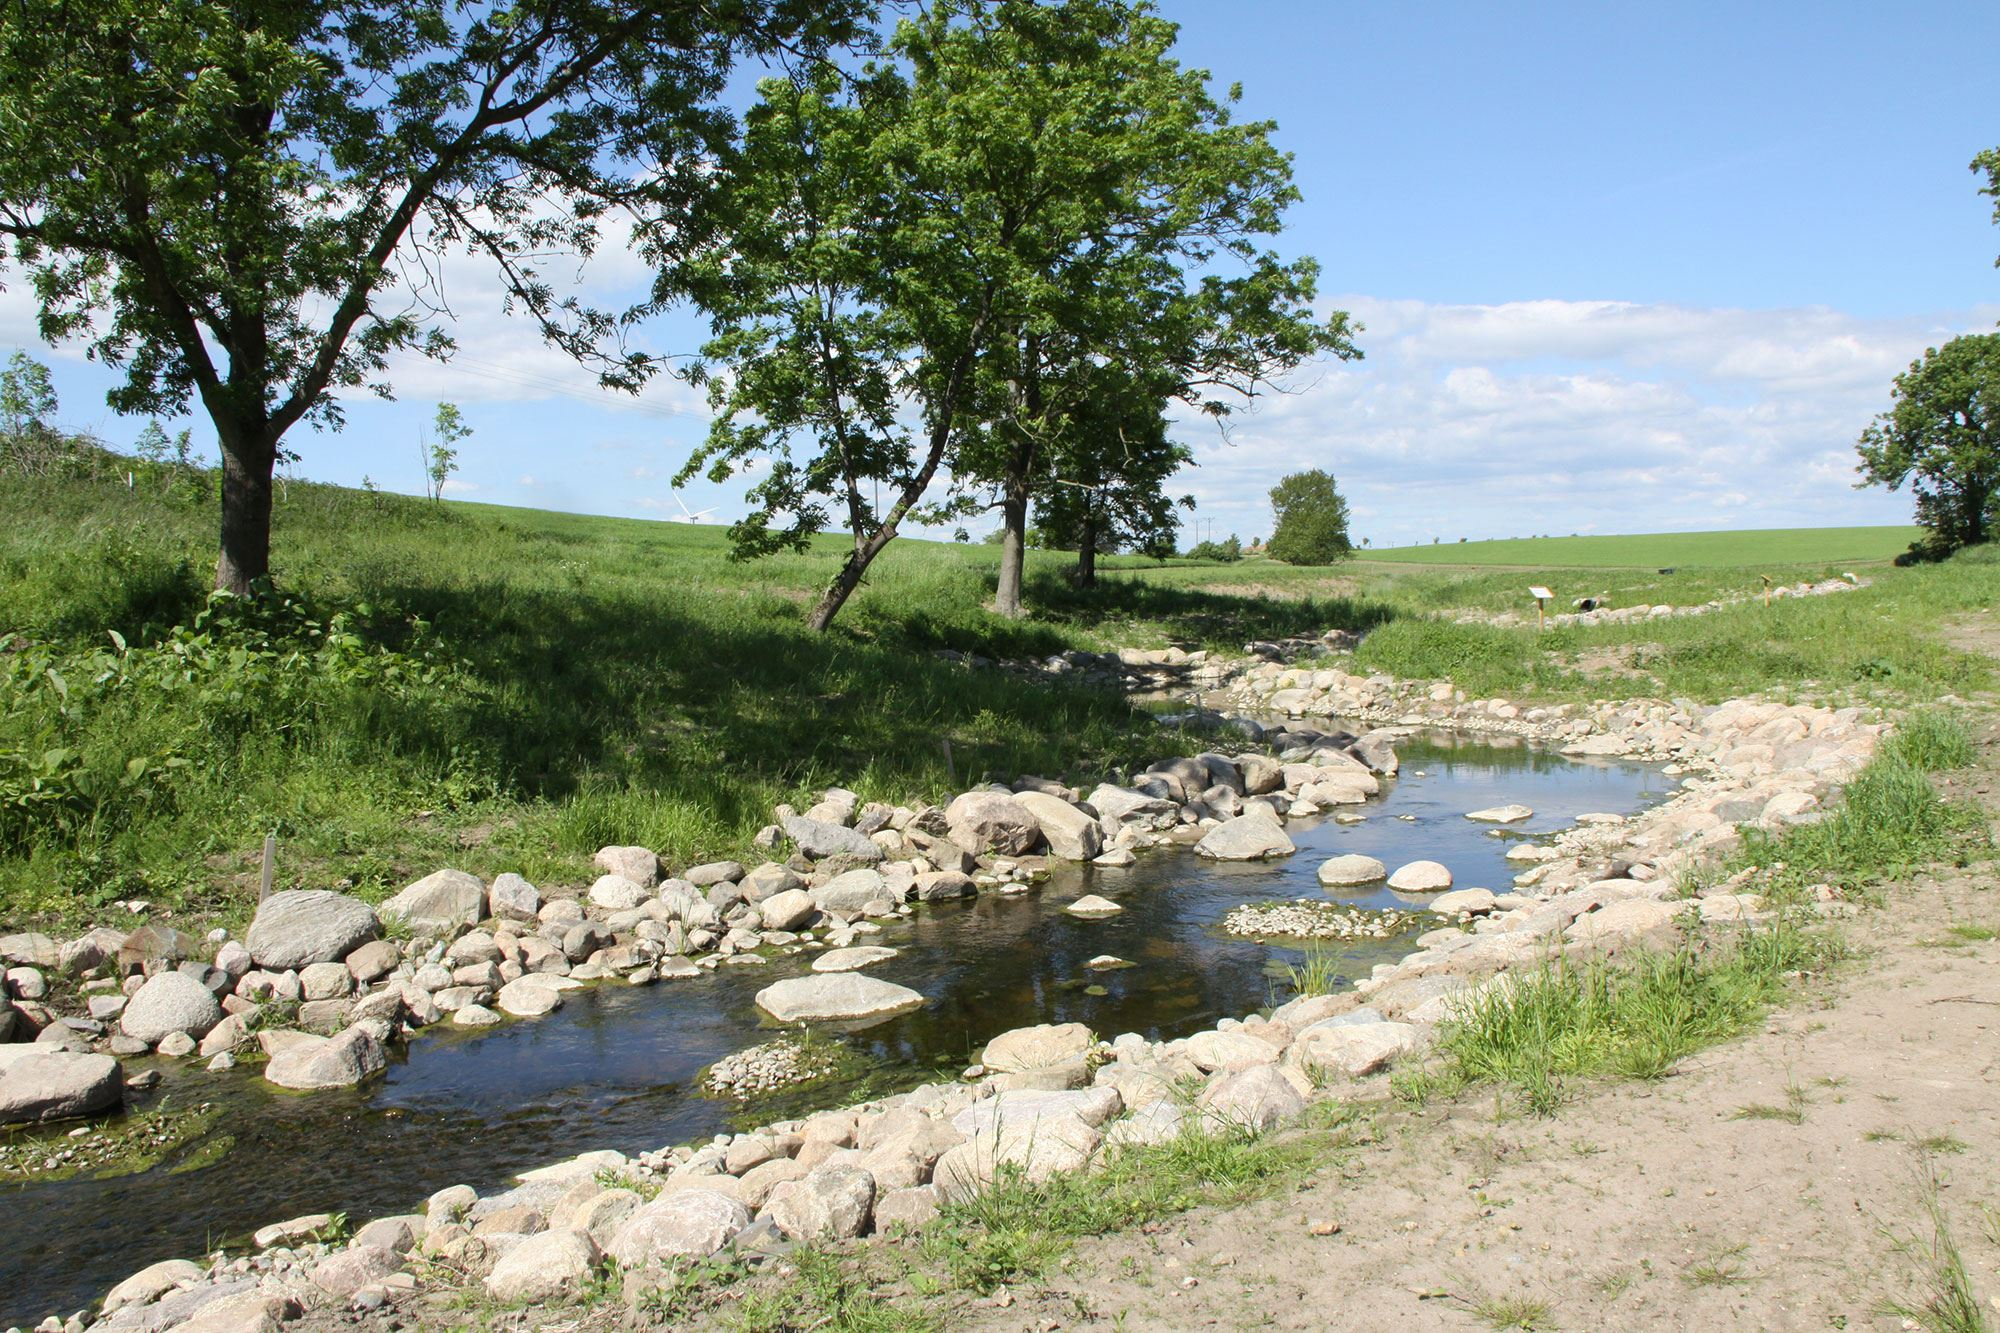 © www.trelleborg.se cc sa 3.0, Show section of the Tullstorp stream